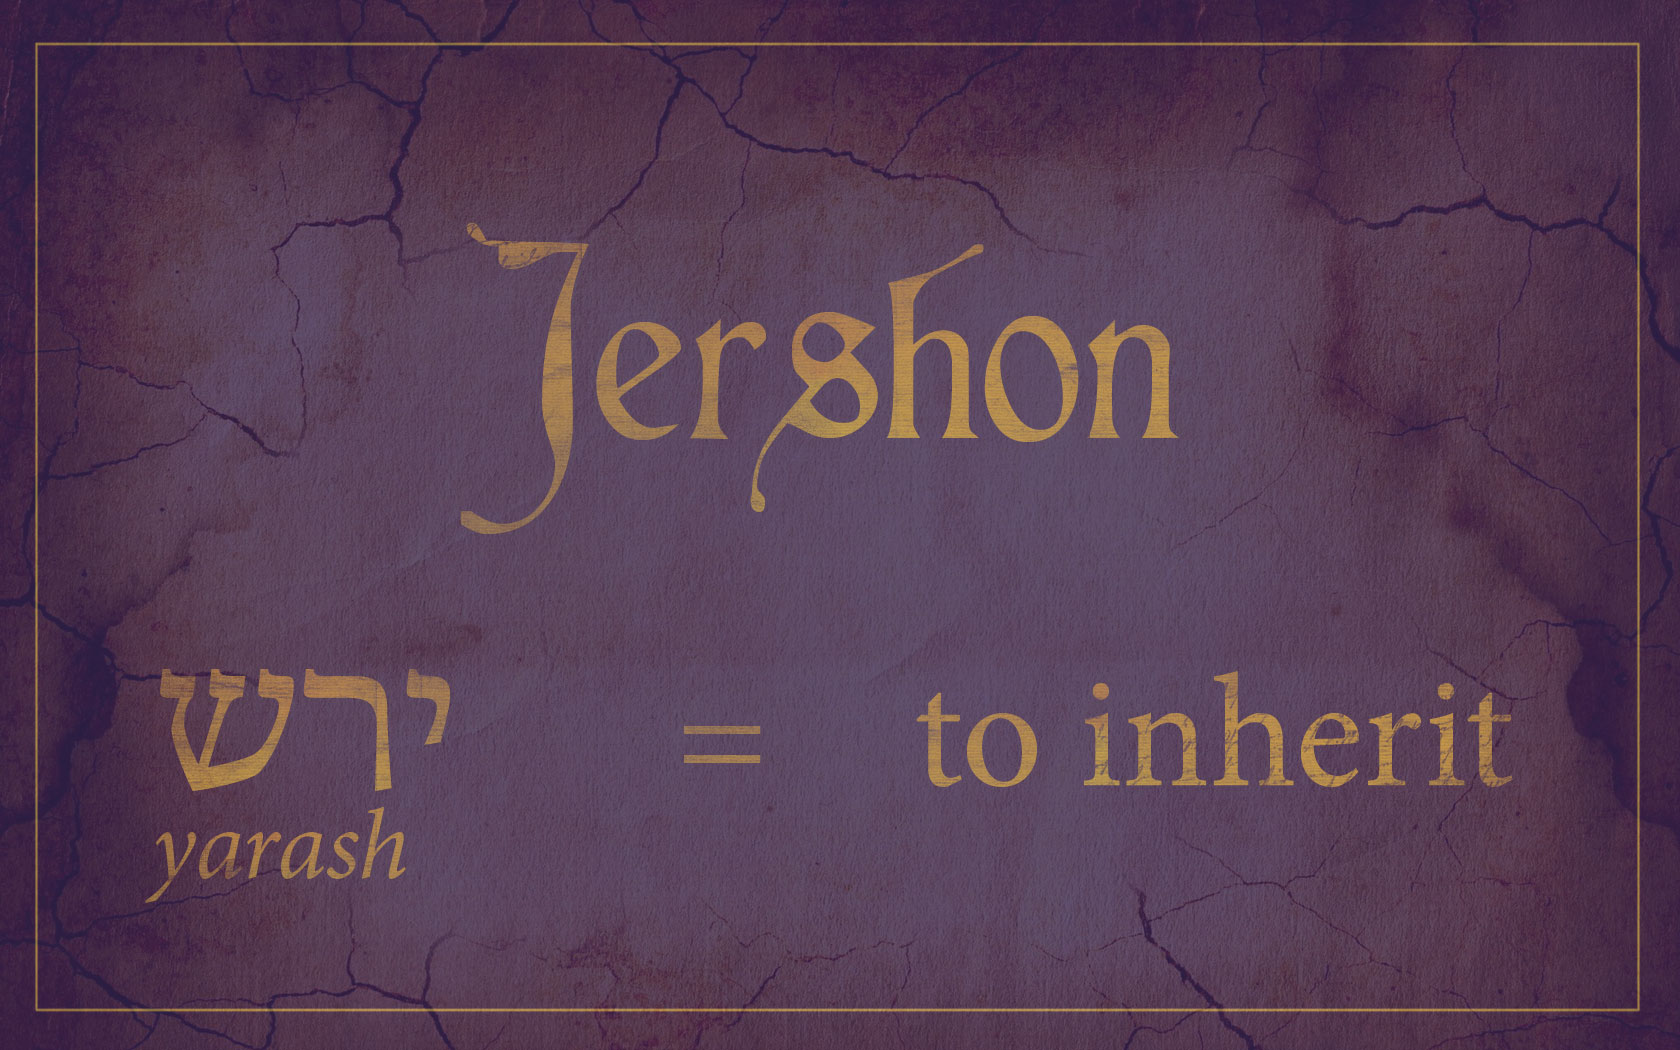 Why Was Jershon Called a Land of Inheritance? | Book of